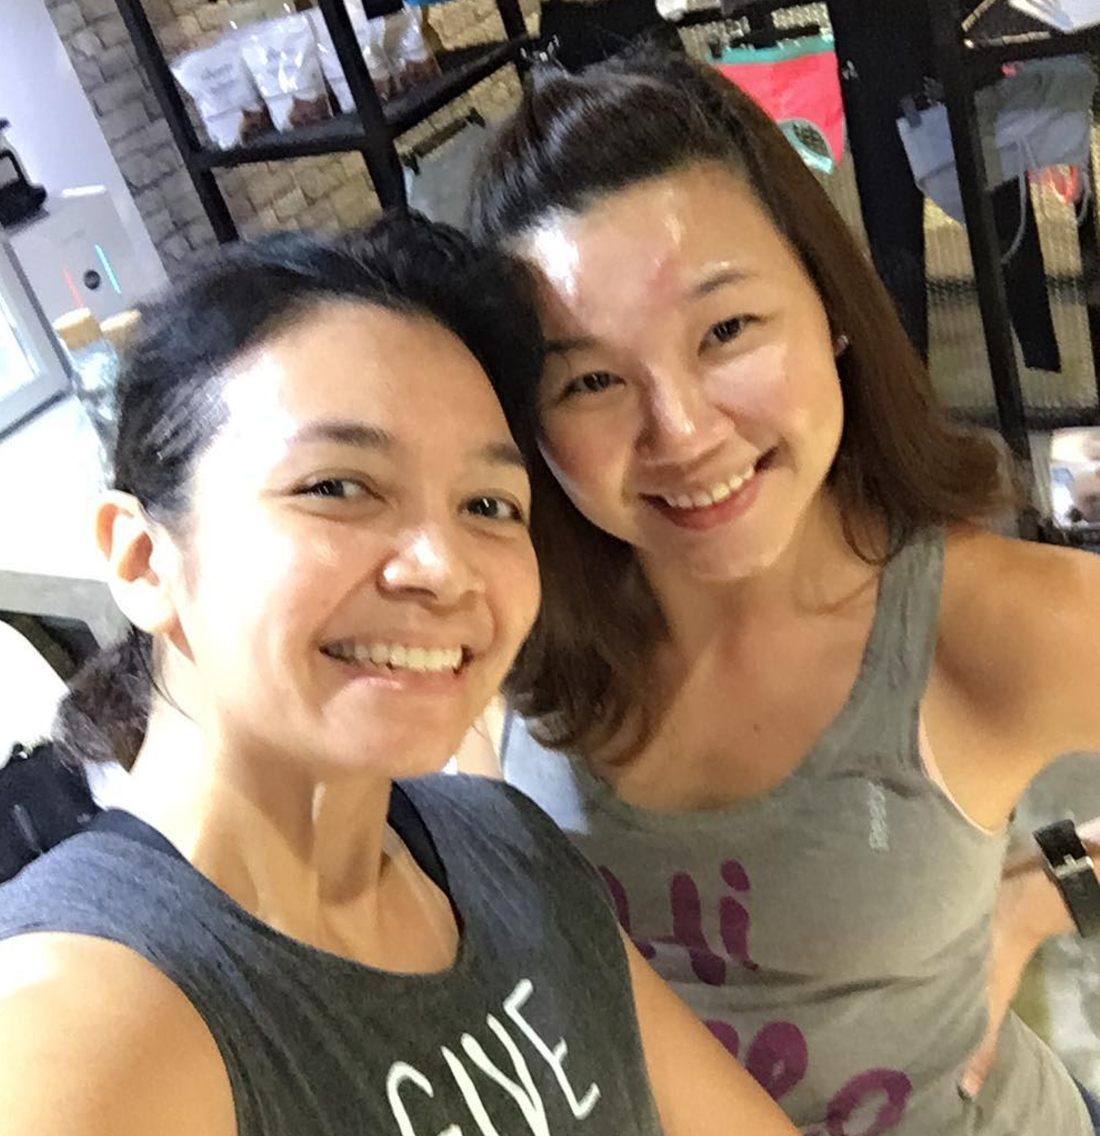 """Fun-Fitness"" - FUN-FITNESS IS WHAT THIS IS! YOU'LL SWEAT BUCKET OF HAPPINESS, MUSCLES BE ""SINGING"" AND YOUR BODY WILL THANK YOU FOR IT! A PLACE WHERE YOU'RE NEVER, ""NOT GOOD ENOUGH"", REGARDLESS OF WHAT YOU CAN OR CANNOT DO. THE DAILYMUSCLE TEAM, NOEL & KIM, HAVE HELPED ME LOSE OVER 15KG, RUN MARATHONS AND FLIP TYRES!!! THEY ARE MORE THAN JUST COACHES, THEY MAKE YOU PART OF THEIR FAMILY (NO DRAMAS ATTACHED). MY JOURNEY HAS NOT STOPPED AND THEY CONTINUE TO CHALLENGE ME ALL THE TIME! COME MAKE NEW FRIENDS AND WITNESS HOW FITNESS WILL BECOME PART OF YOUR LIFESTYLE.Ida Ghazali"